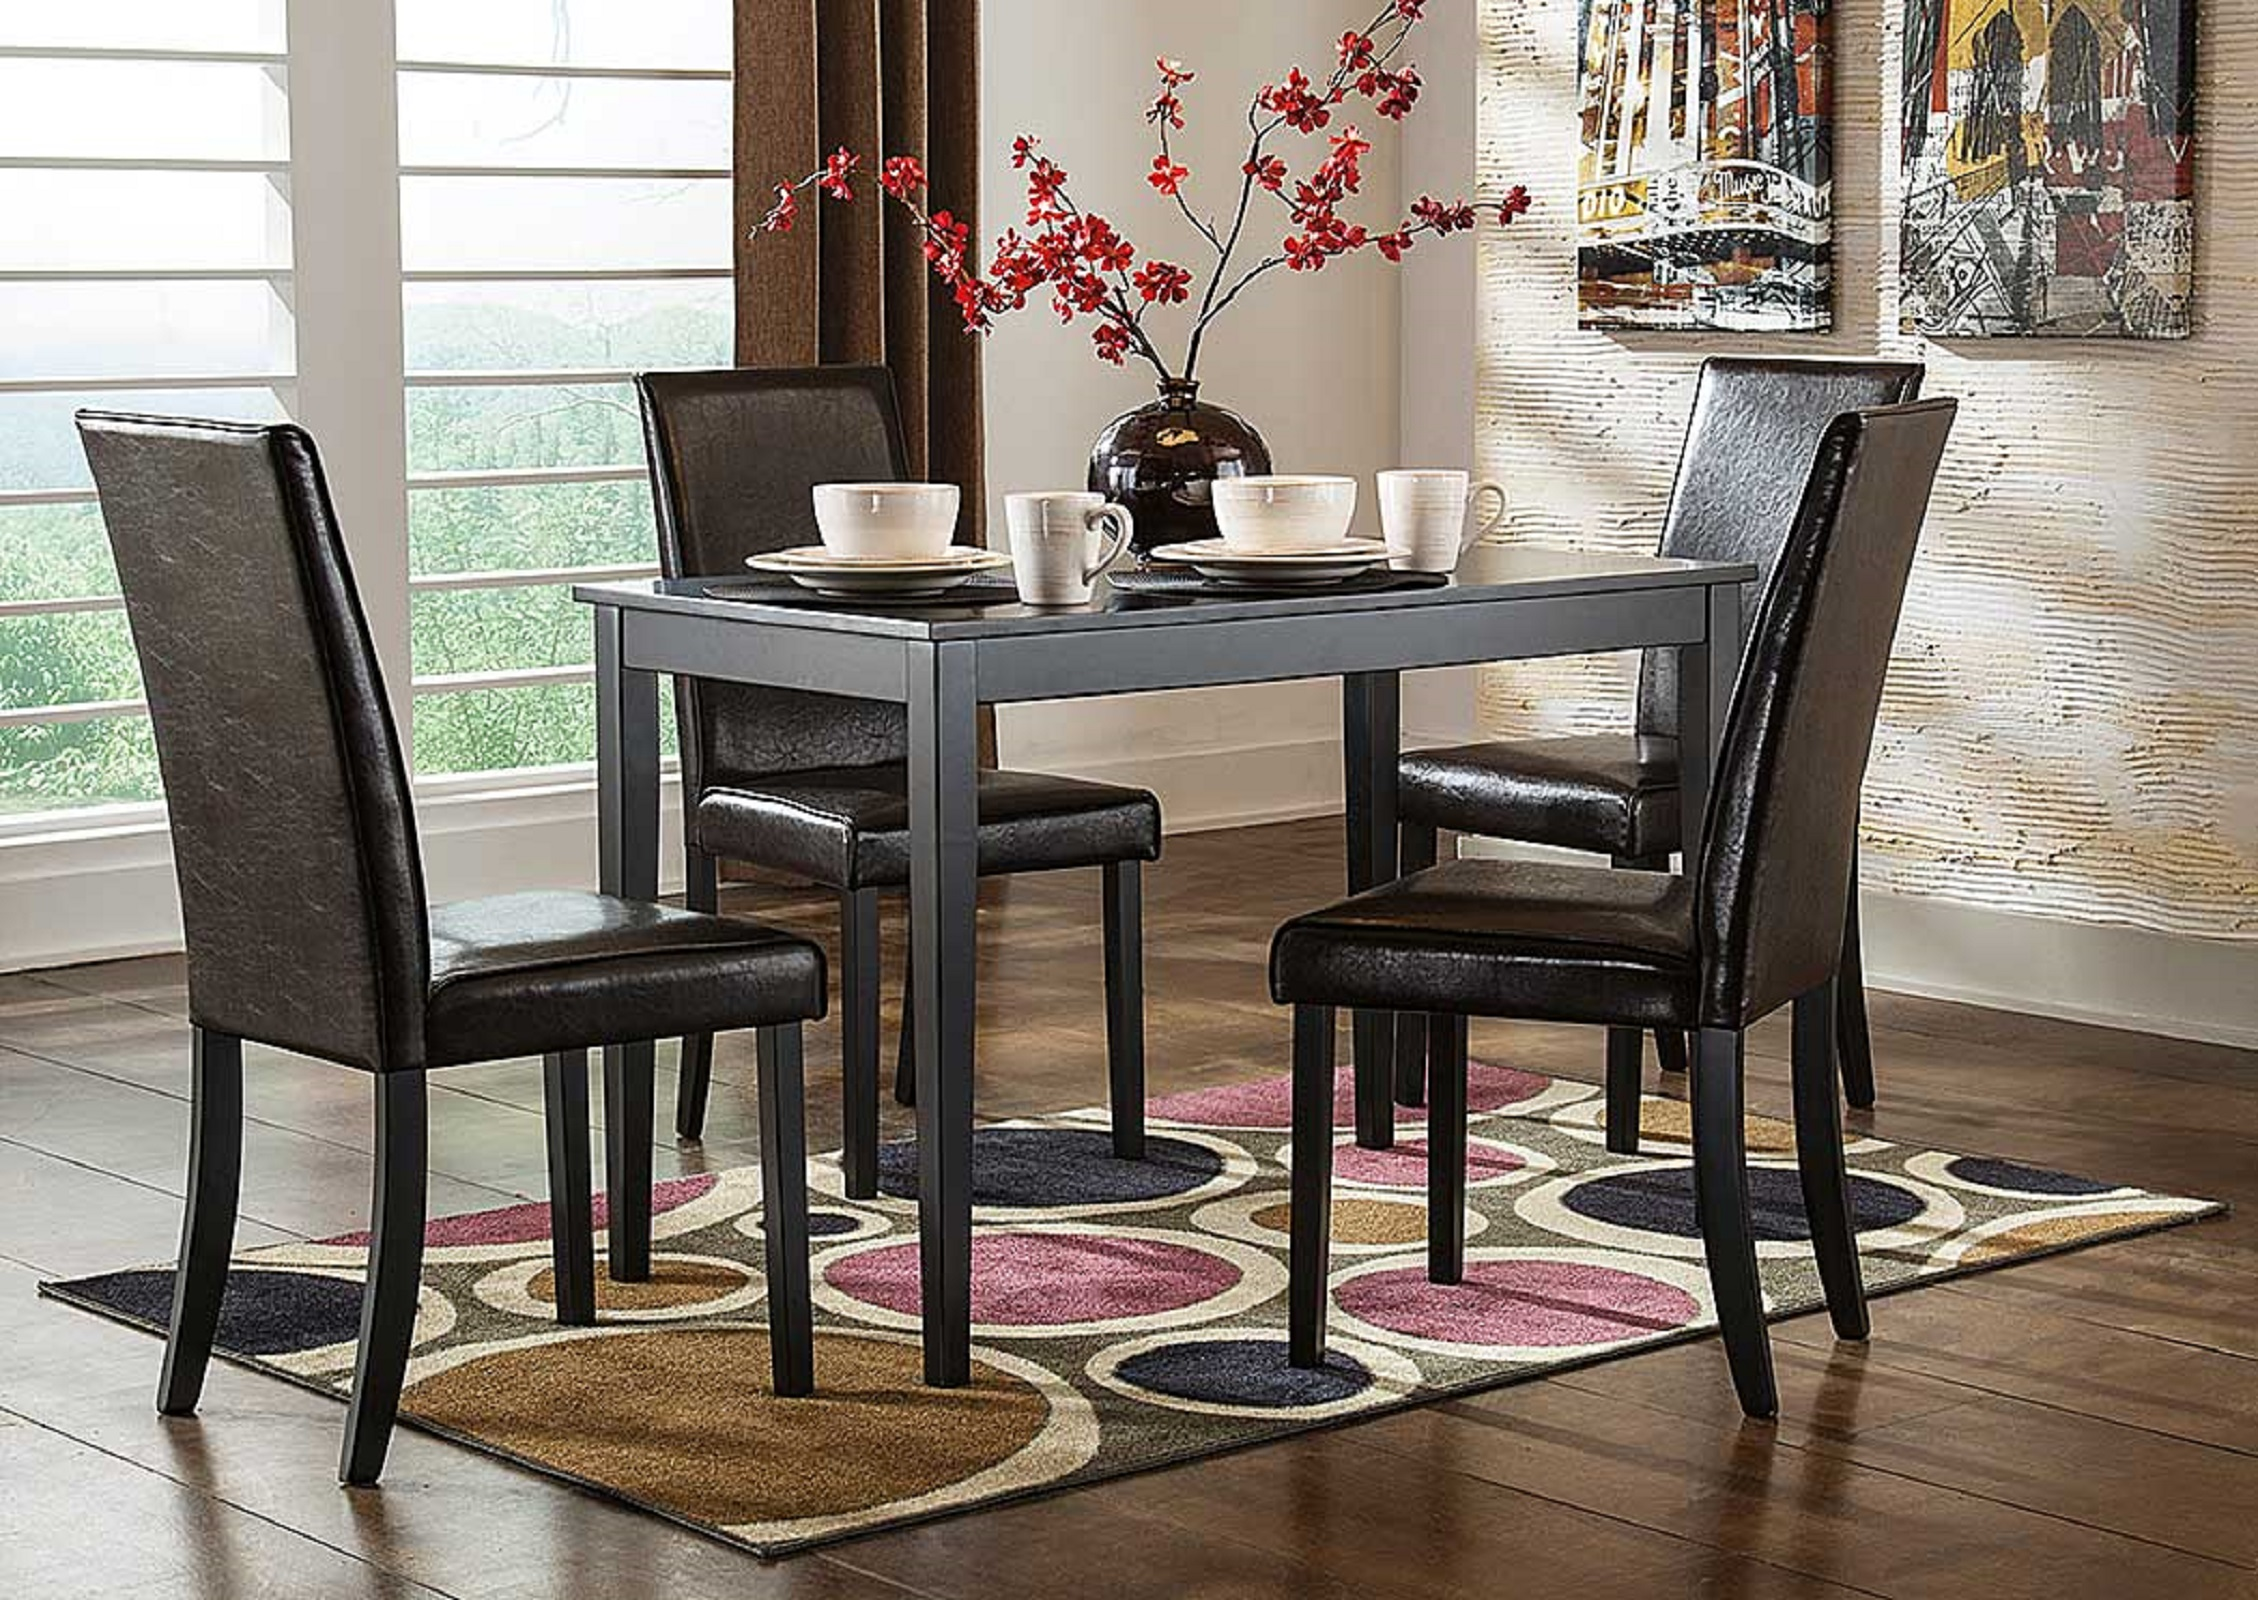 Signature Design by Ashley Kimonte Rectangular Dining Table w/ 4 Dark Brown Chairs